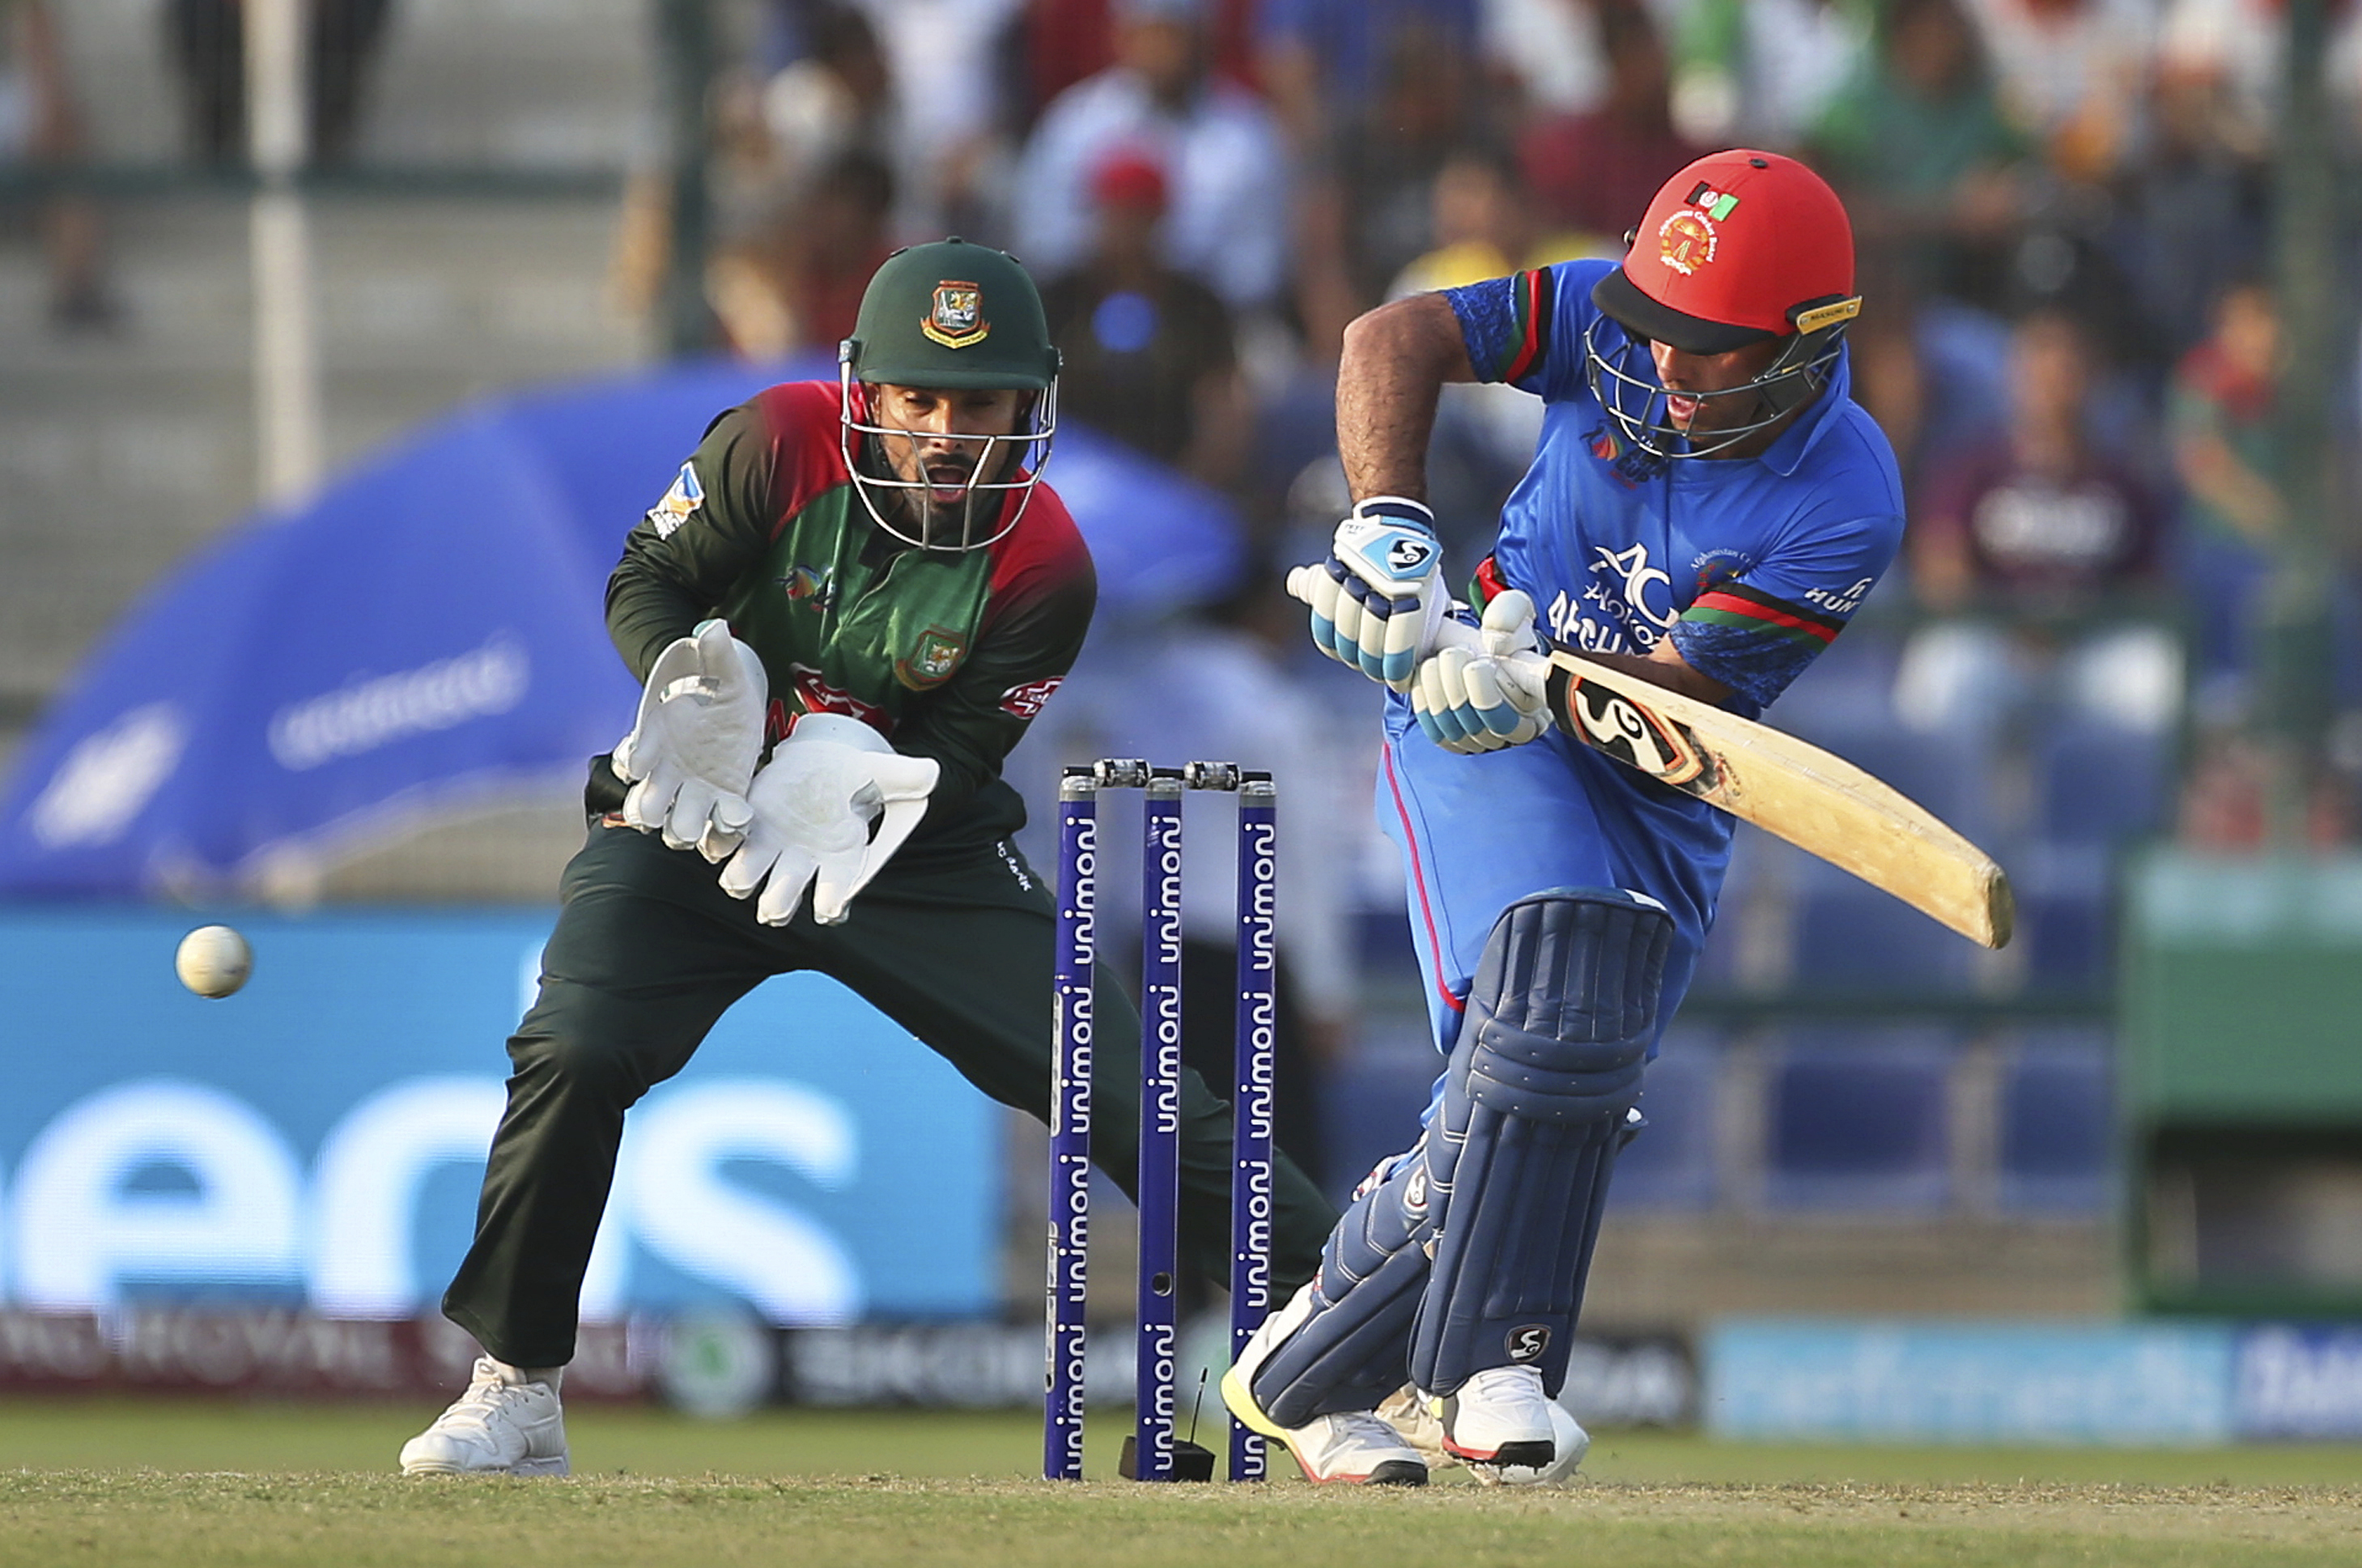 Afghanistan's Hashmatullah Shahidi, right bats during the one day international cricket match of Asia Cup between Bangladesh and Afghanistan in Abu Dhabi, United Arab Emirates - AP